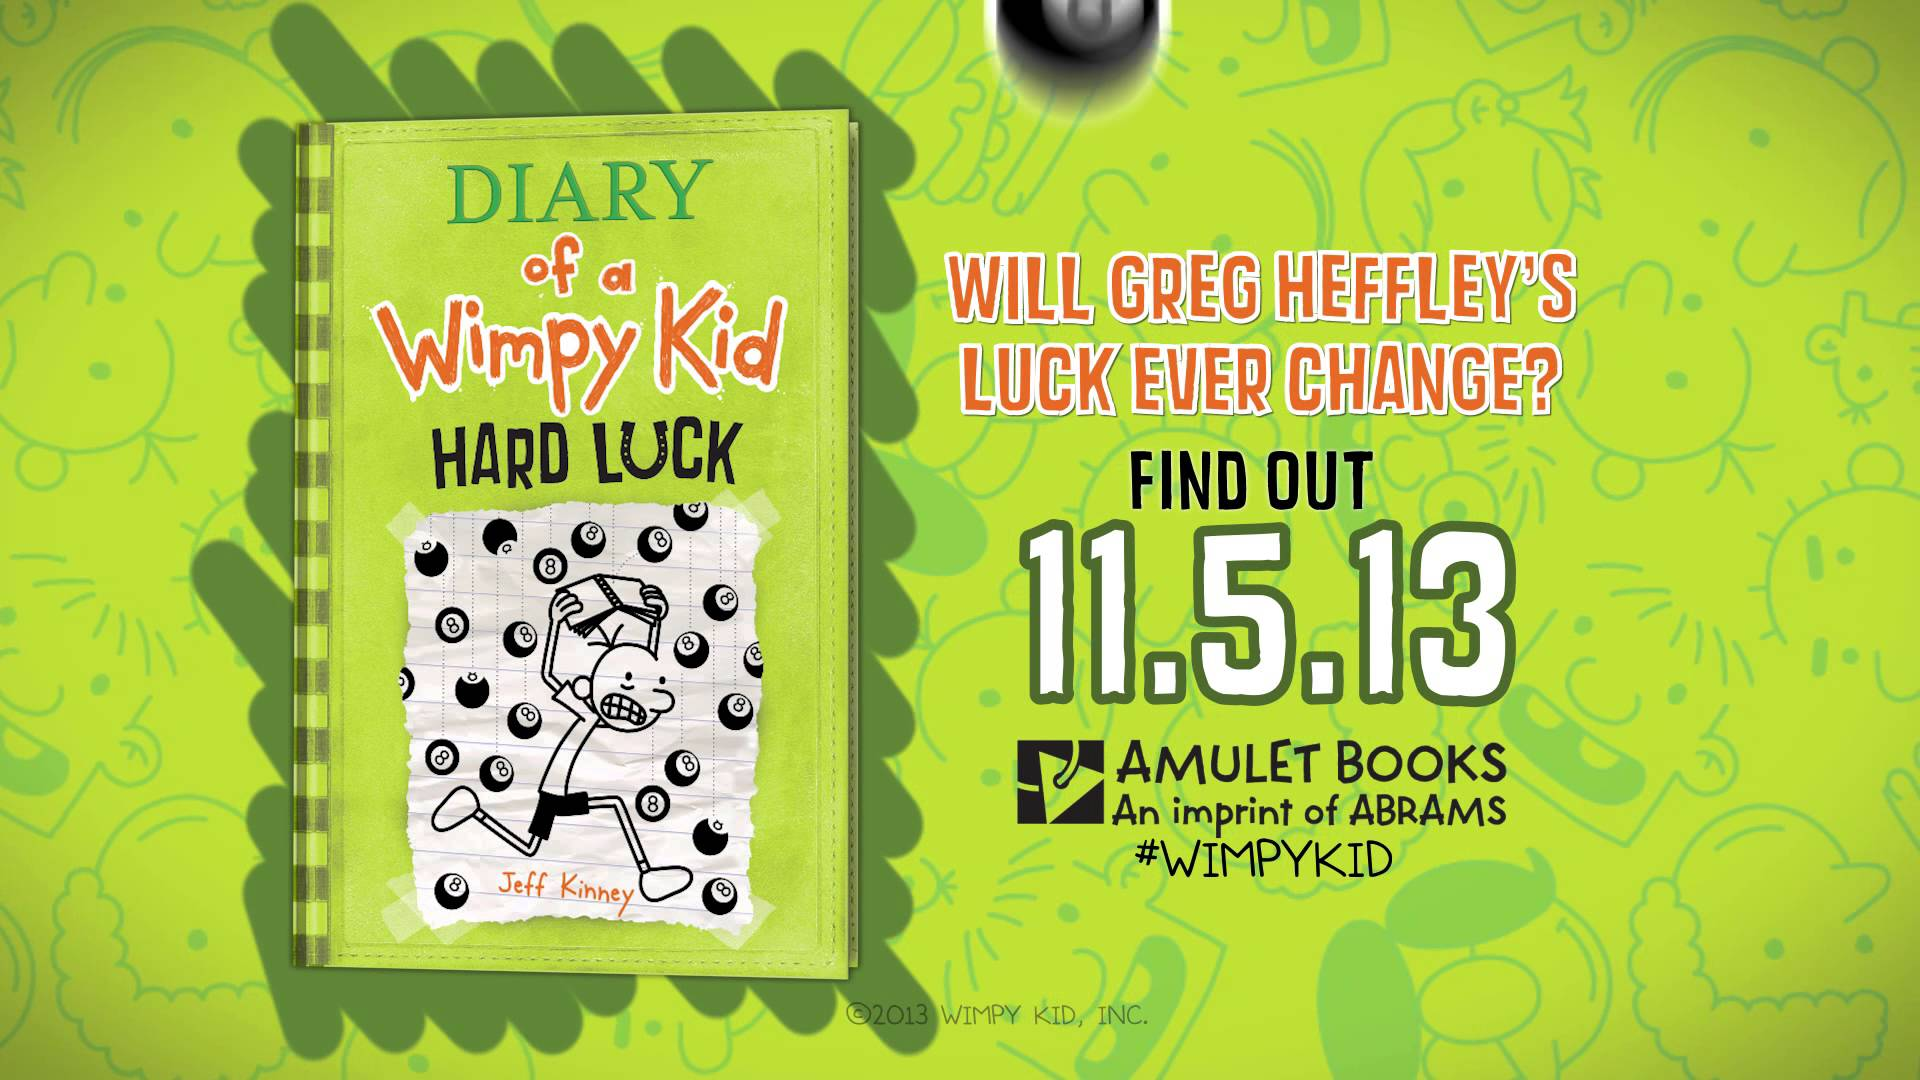 Diary of a wimpy kid wallpapers wallpaper cave diary of a wimpy kid hard luck book 8 youtube solutioingenieria Image collections